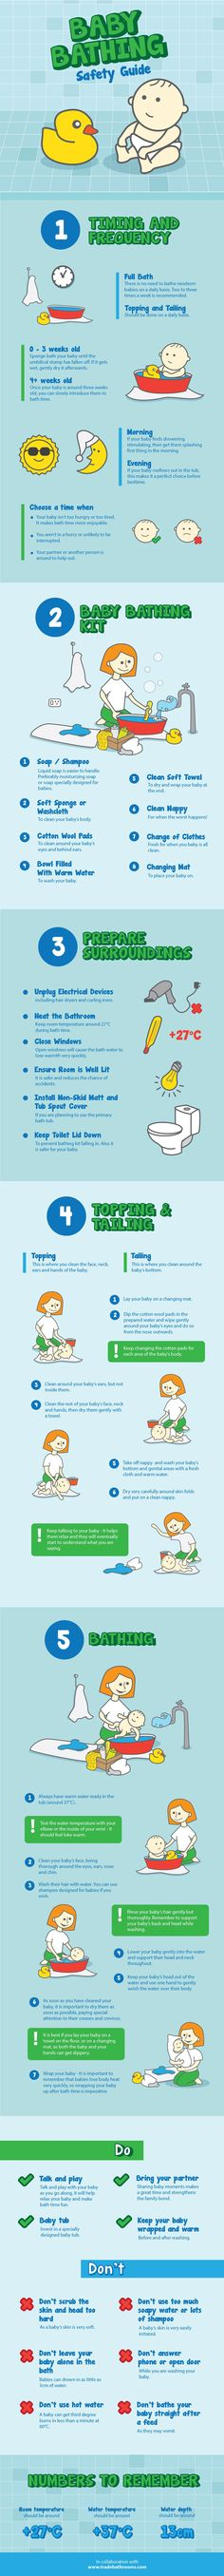 Baby Bathing Safety Guide / infographic